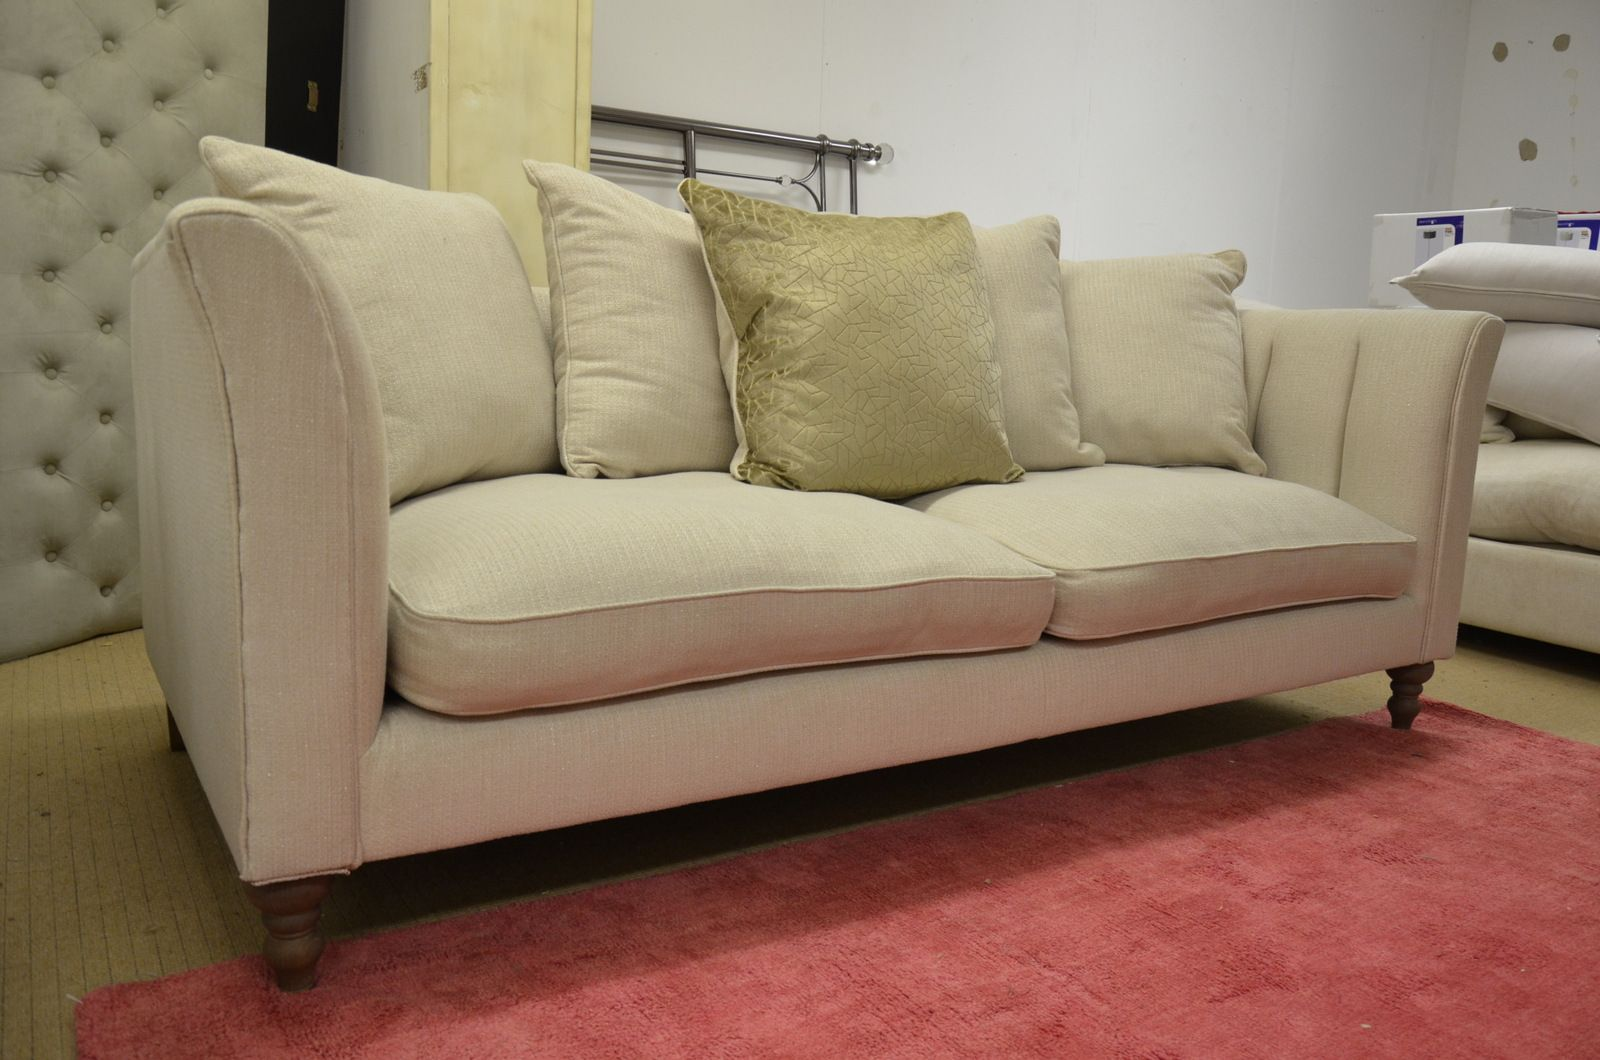 GLAMOUR Large 3 Seater Sofa in Gold Sparkle Fabric with Scatter Cushions